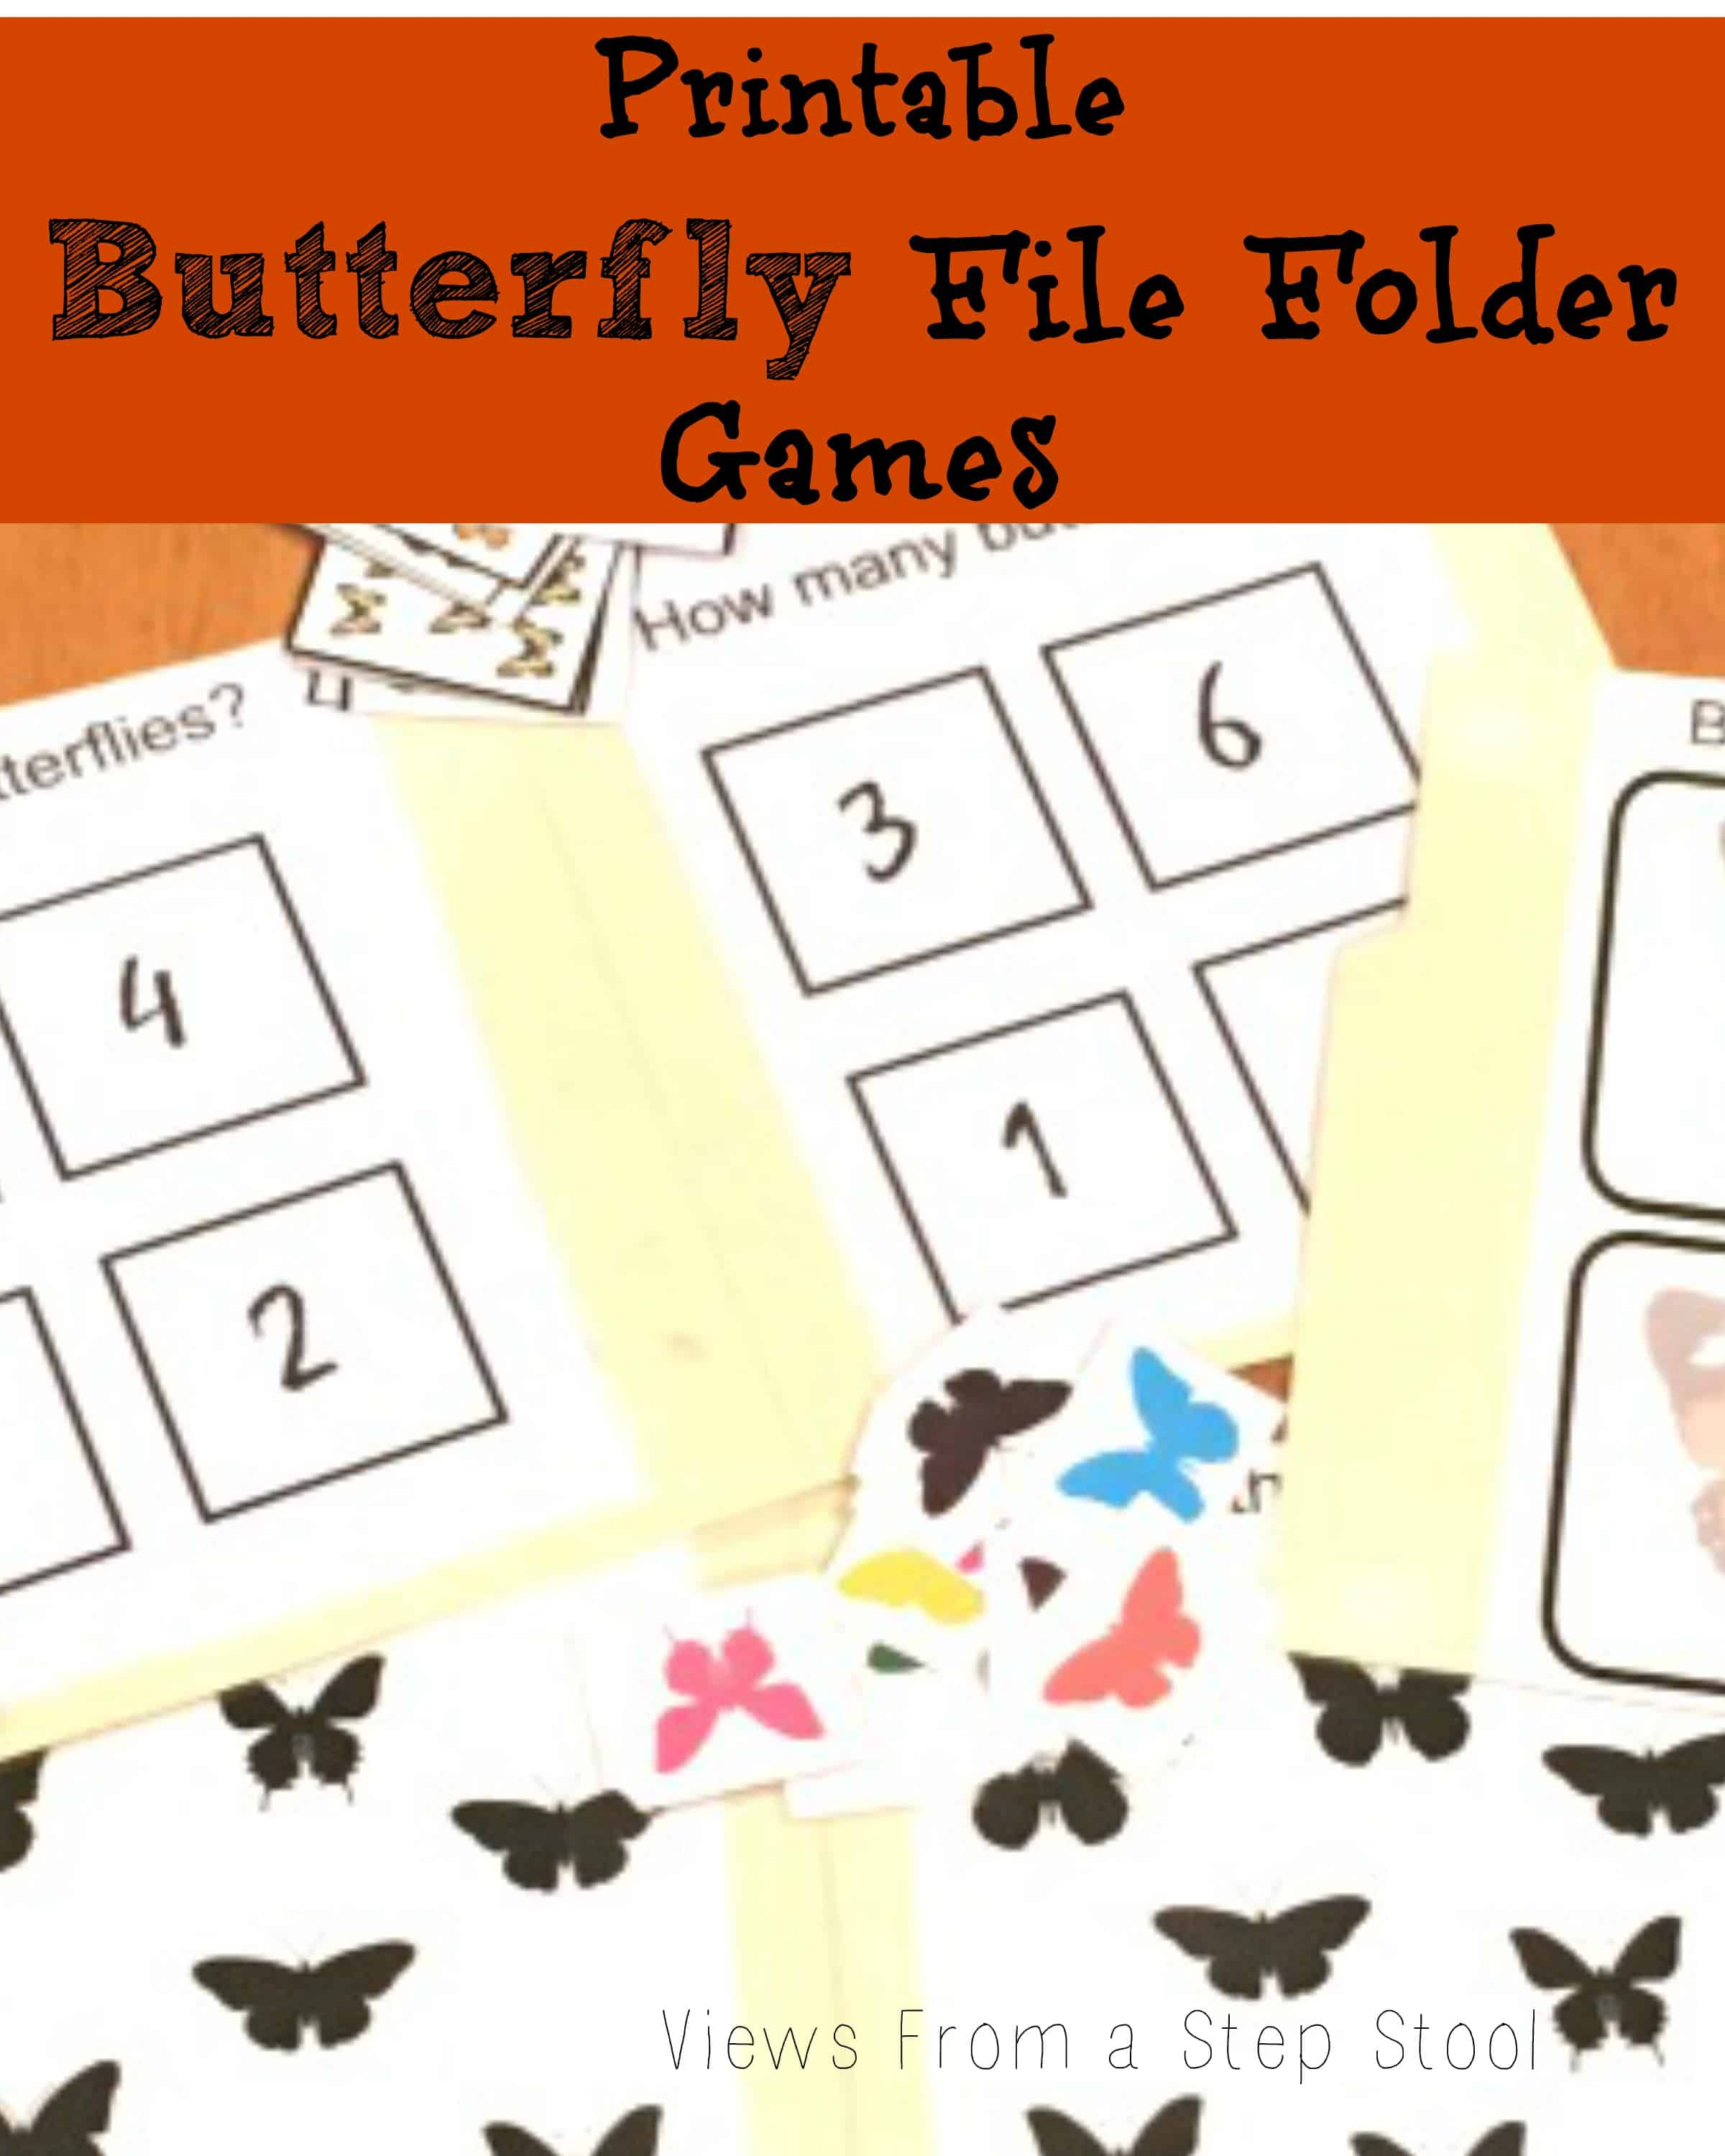 Butterfly File Folder Games: Free Printable!